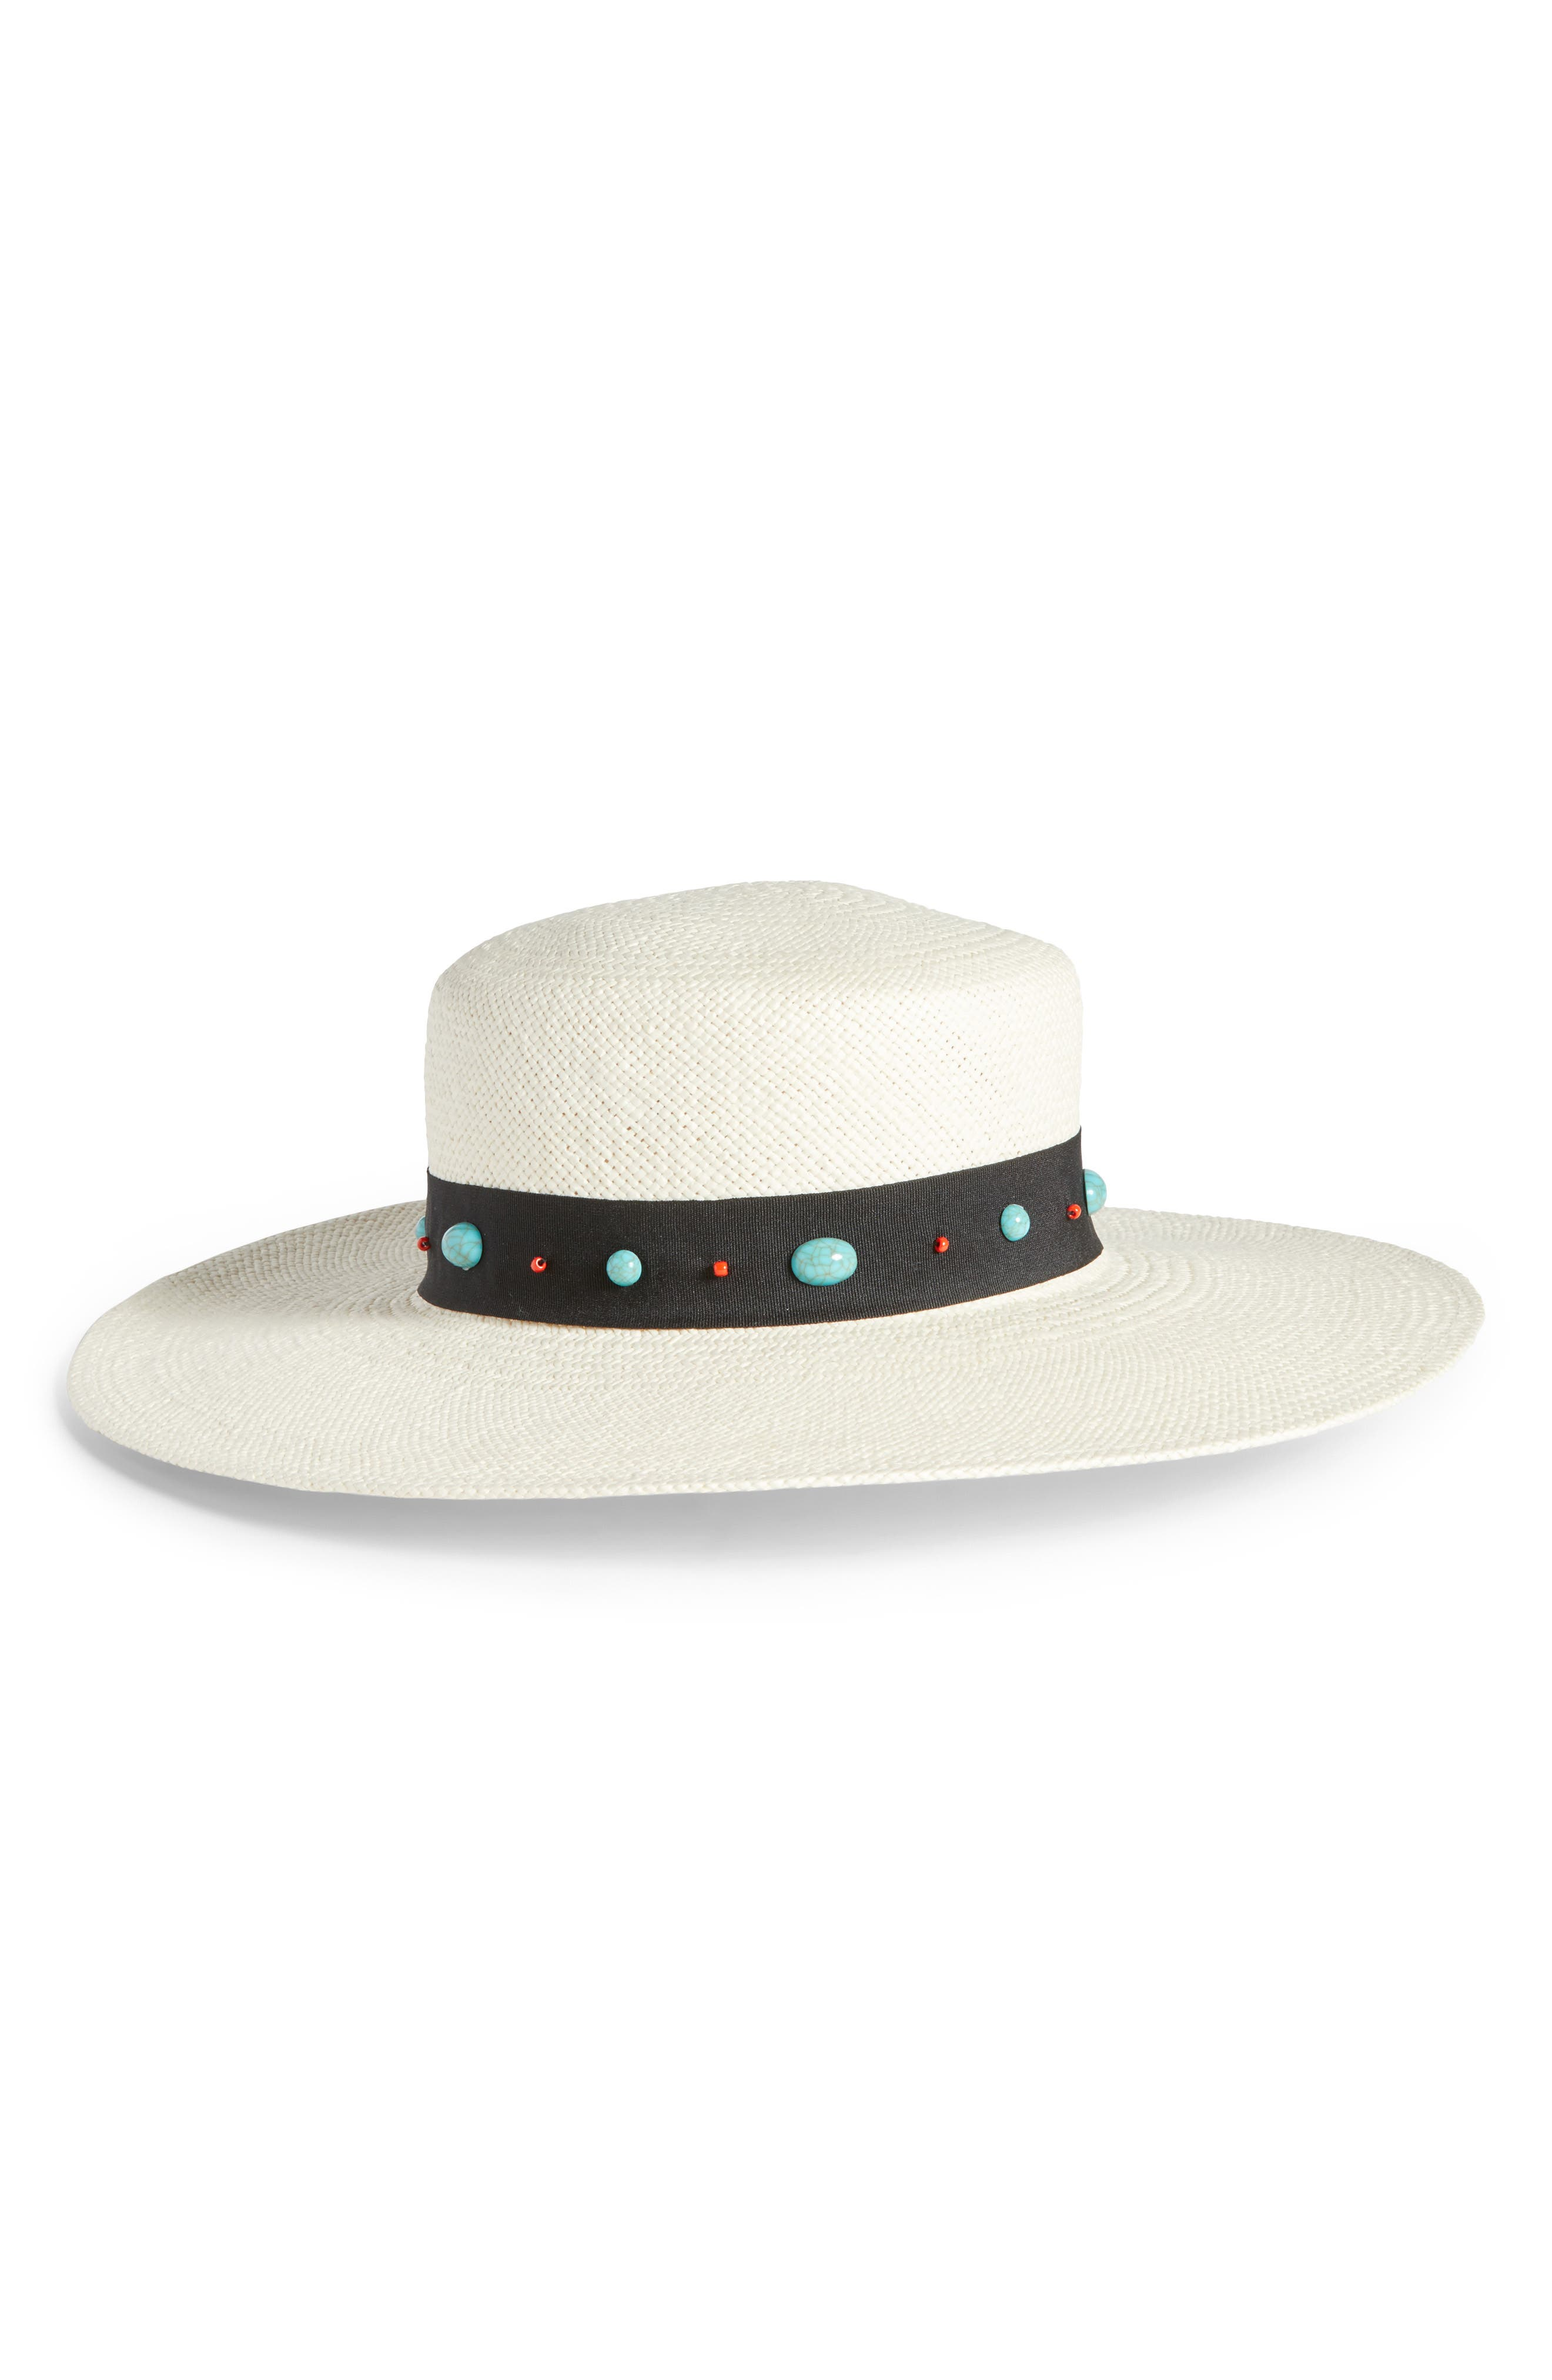 Western Straw Boater Hat,                             Main thumbnail 1, color,                             Ivory